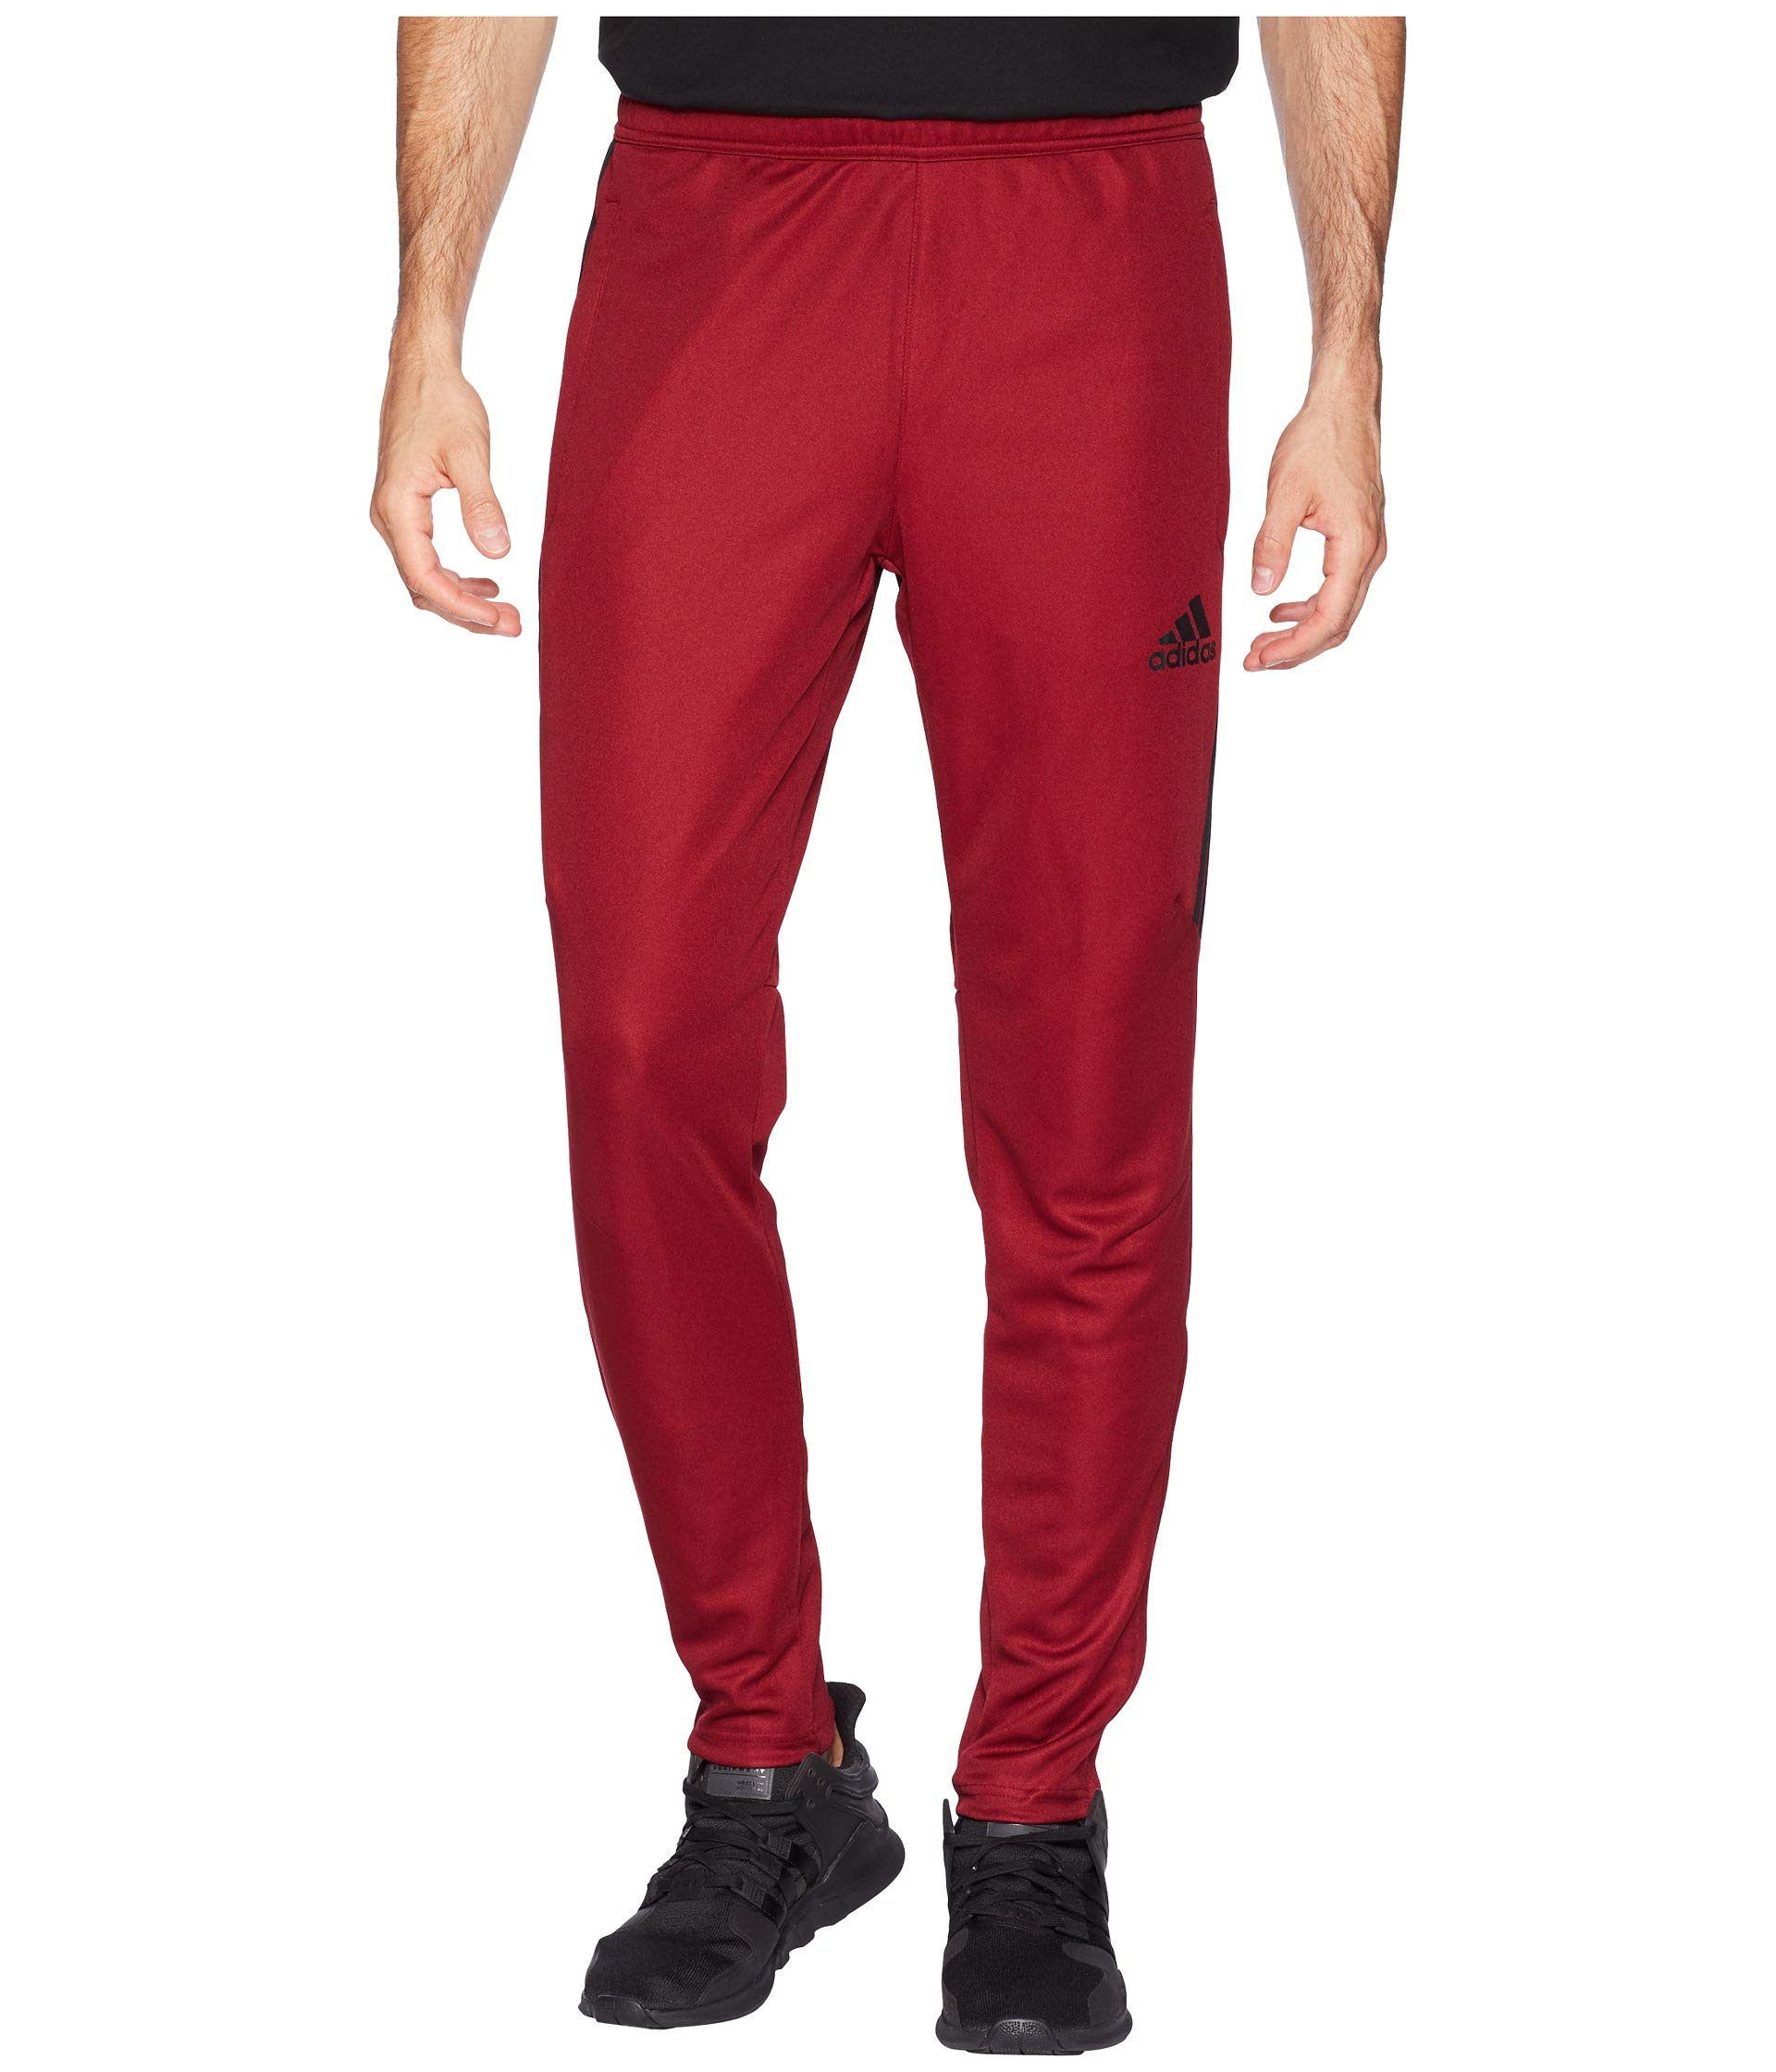 adidas Men's Tiro '17 Pants Collegiate Burgundy/Black Small 31 by adidas